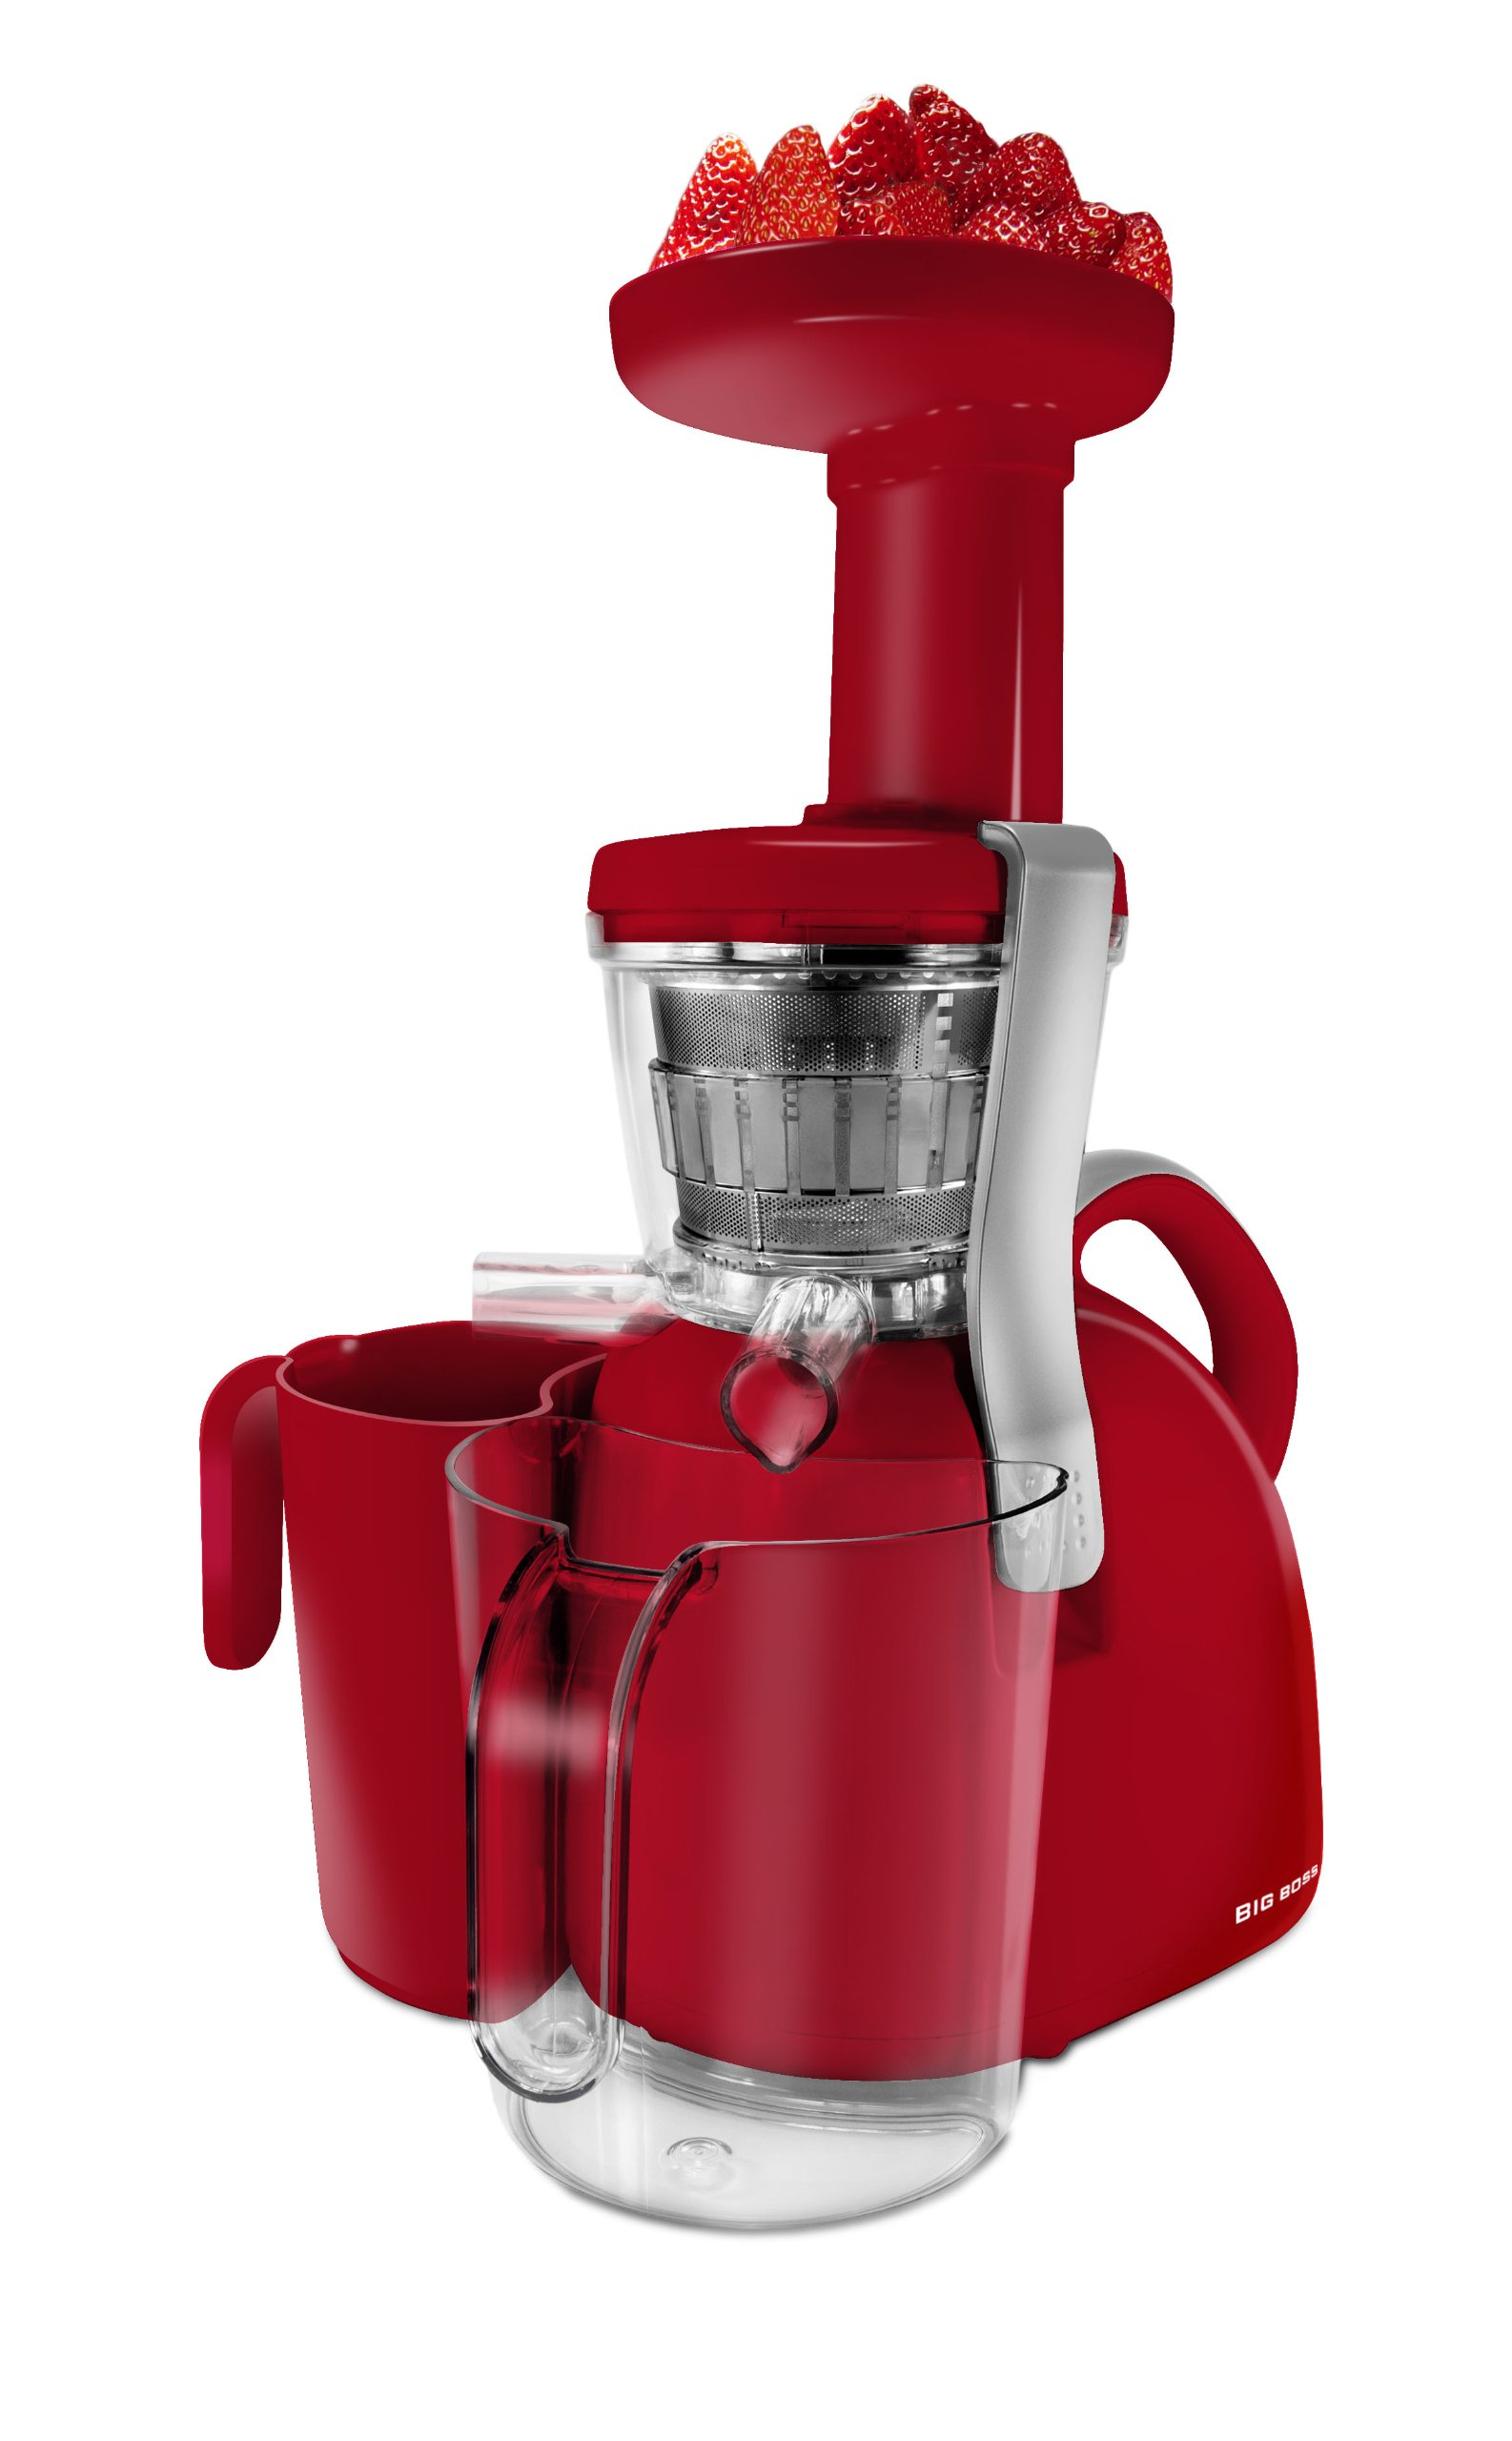 Big Boss 9177 Nutritionally Beneficial Slow Juicer, Red